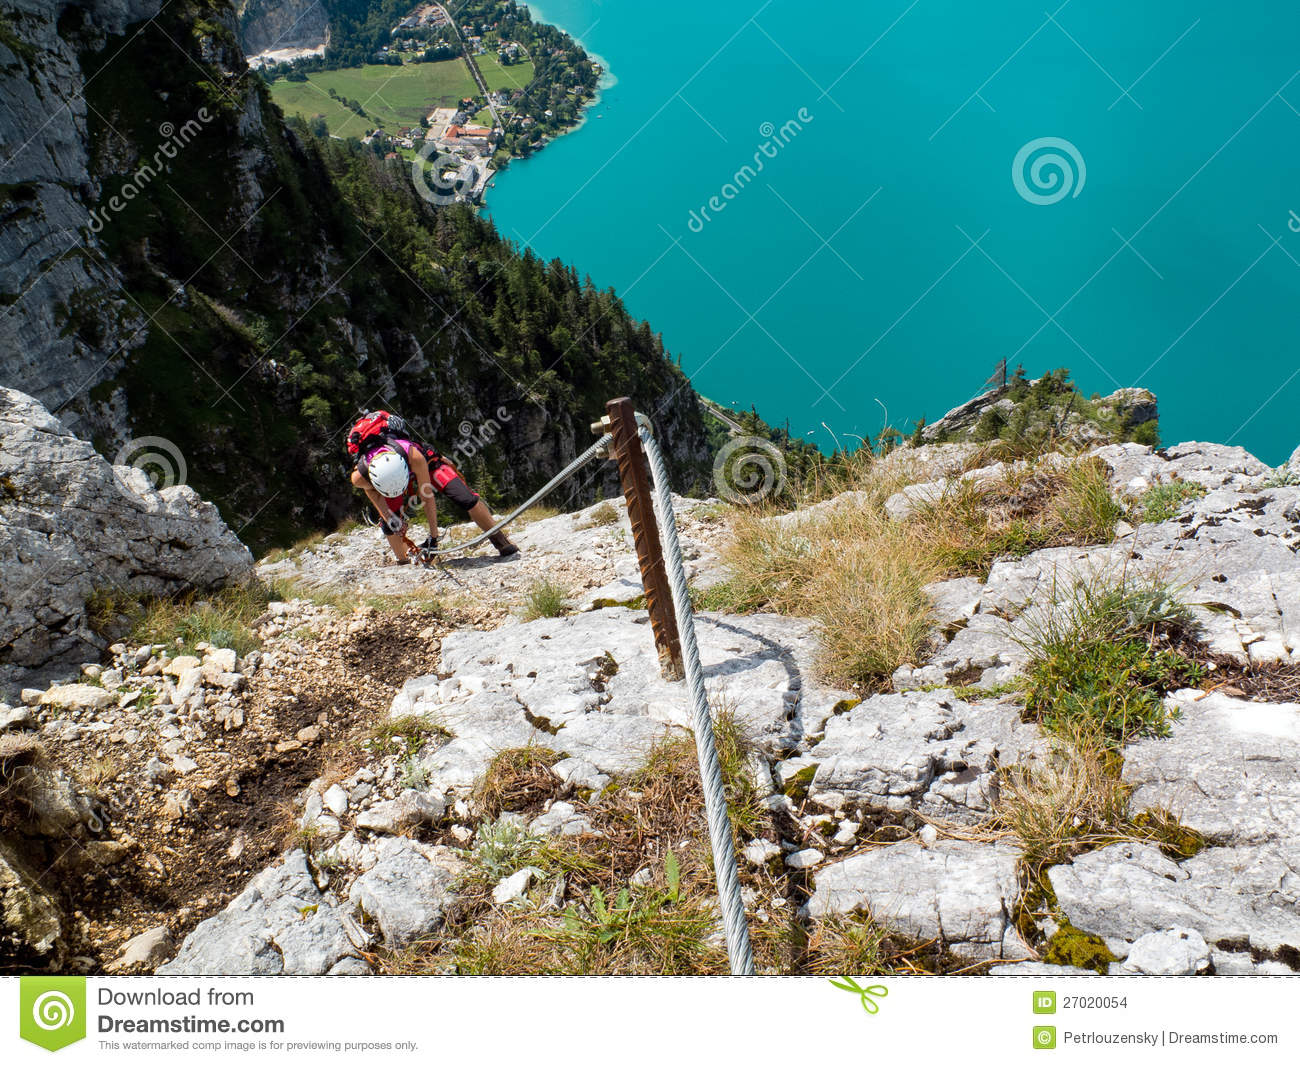 Klettersteig Clipart : Via ferrata klettersteig climbing stock photo image of sport